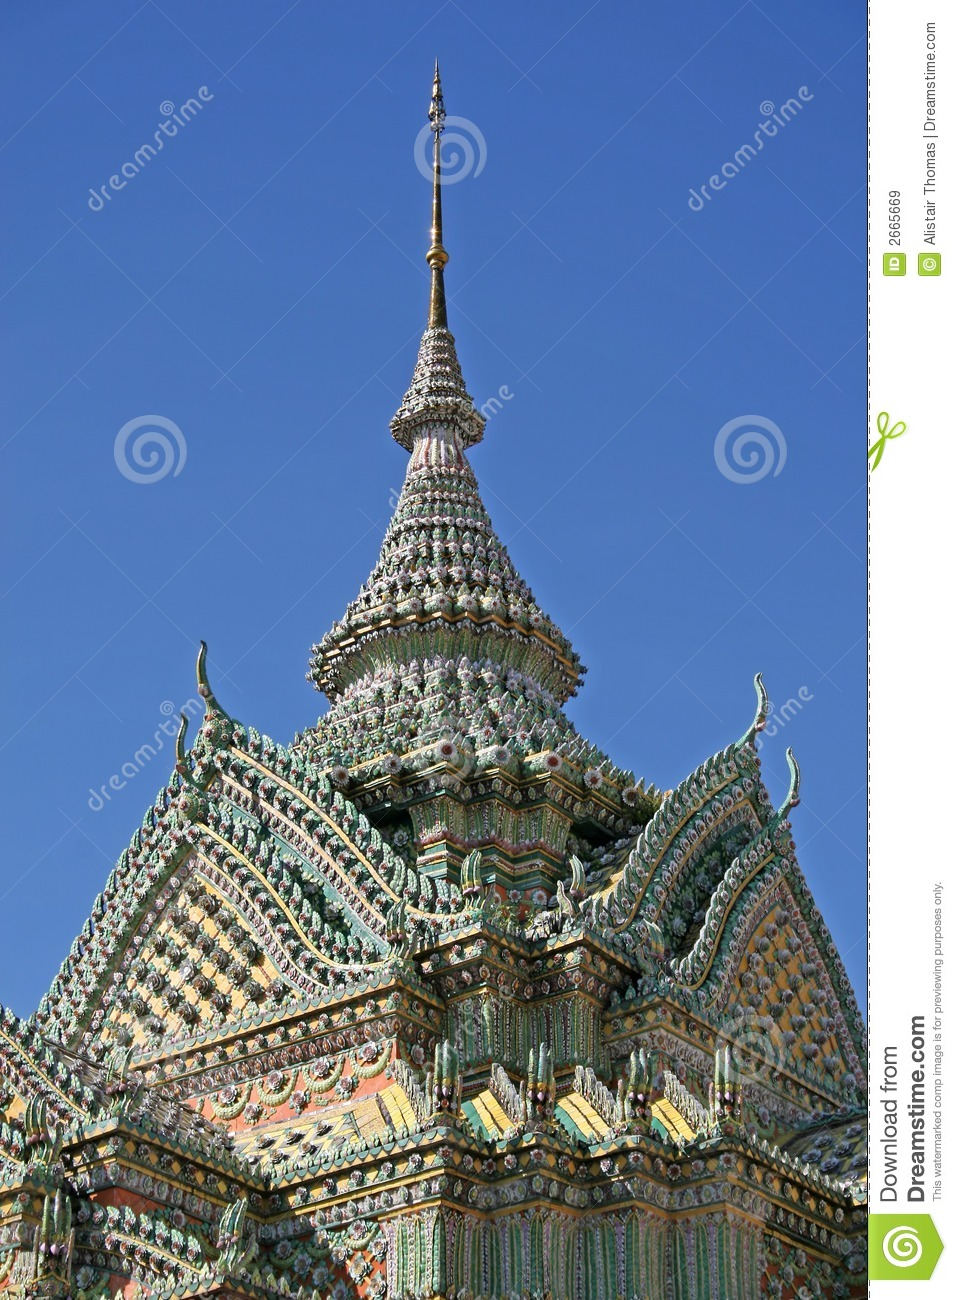 Wat pho architecture royalty free stock images image for Wat architecture